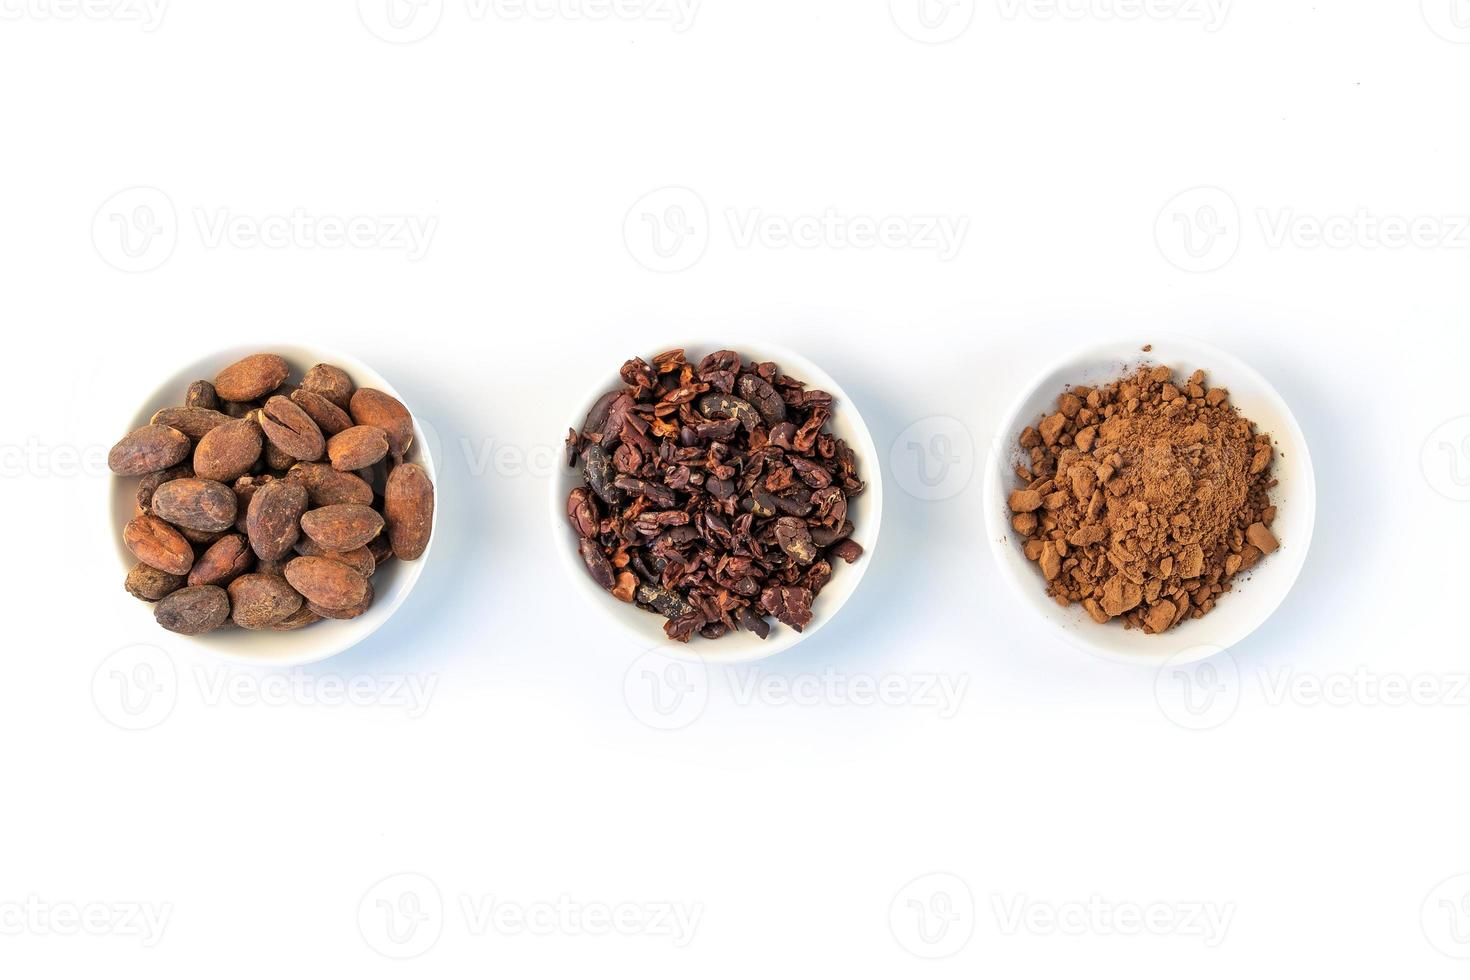 Cacao beans seeds, Cacao nibs and cacao powder on white background photo